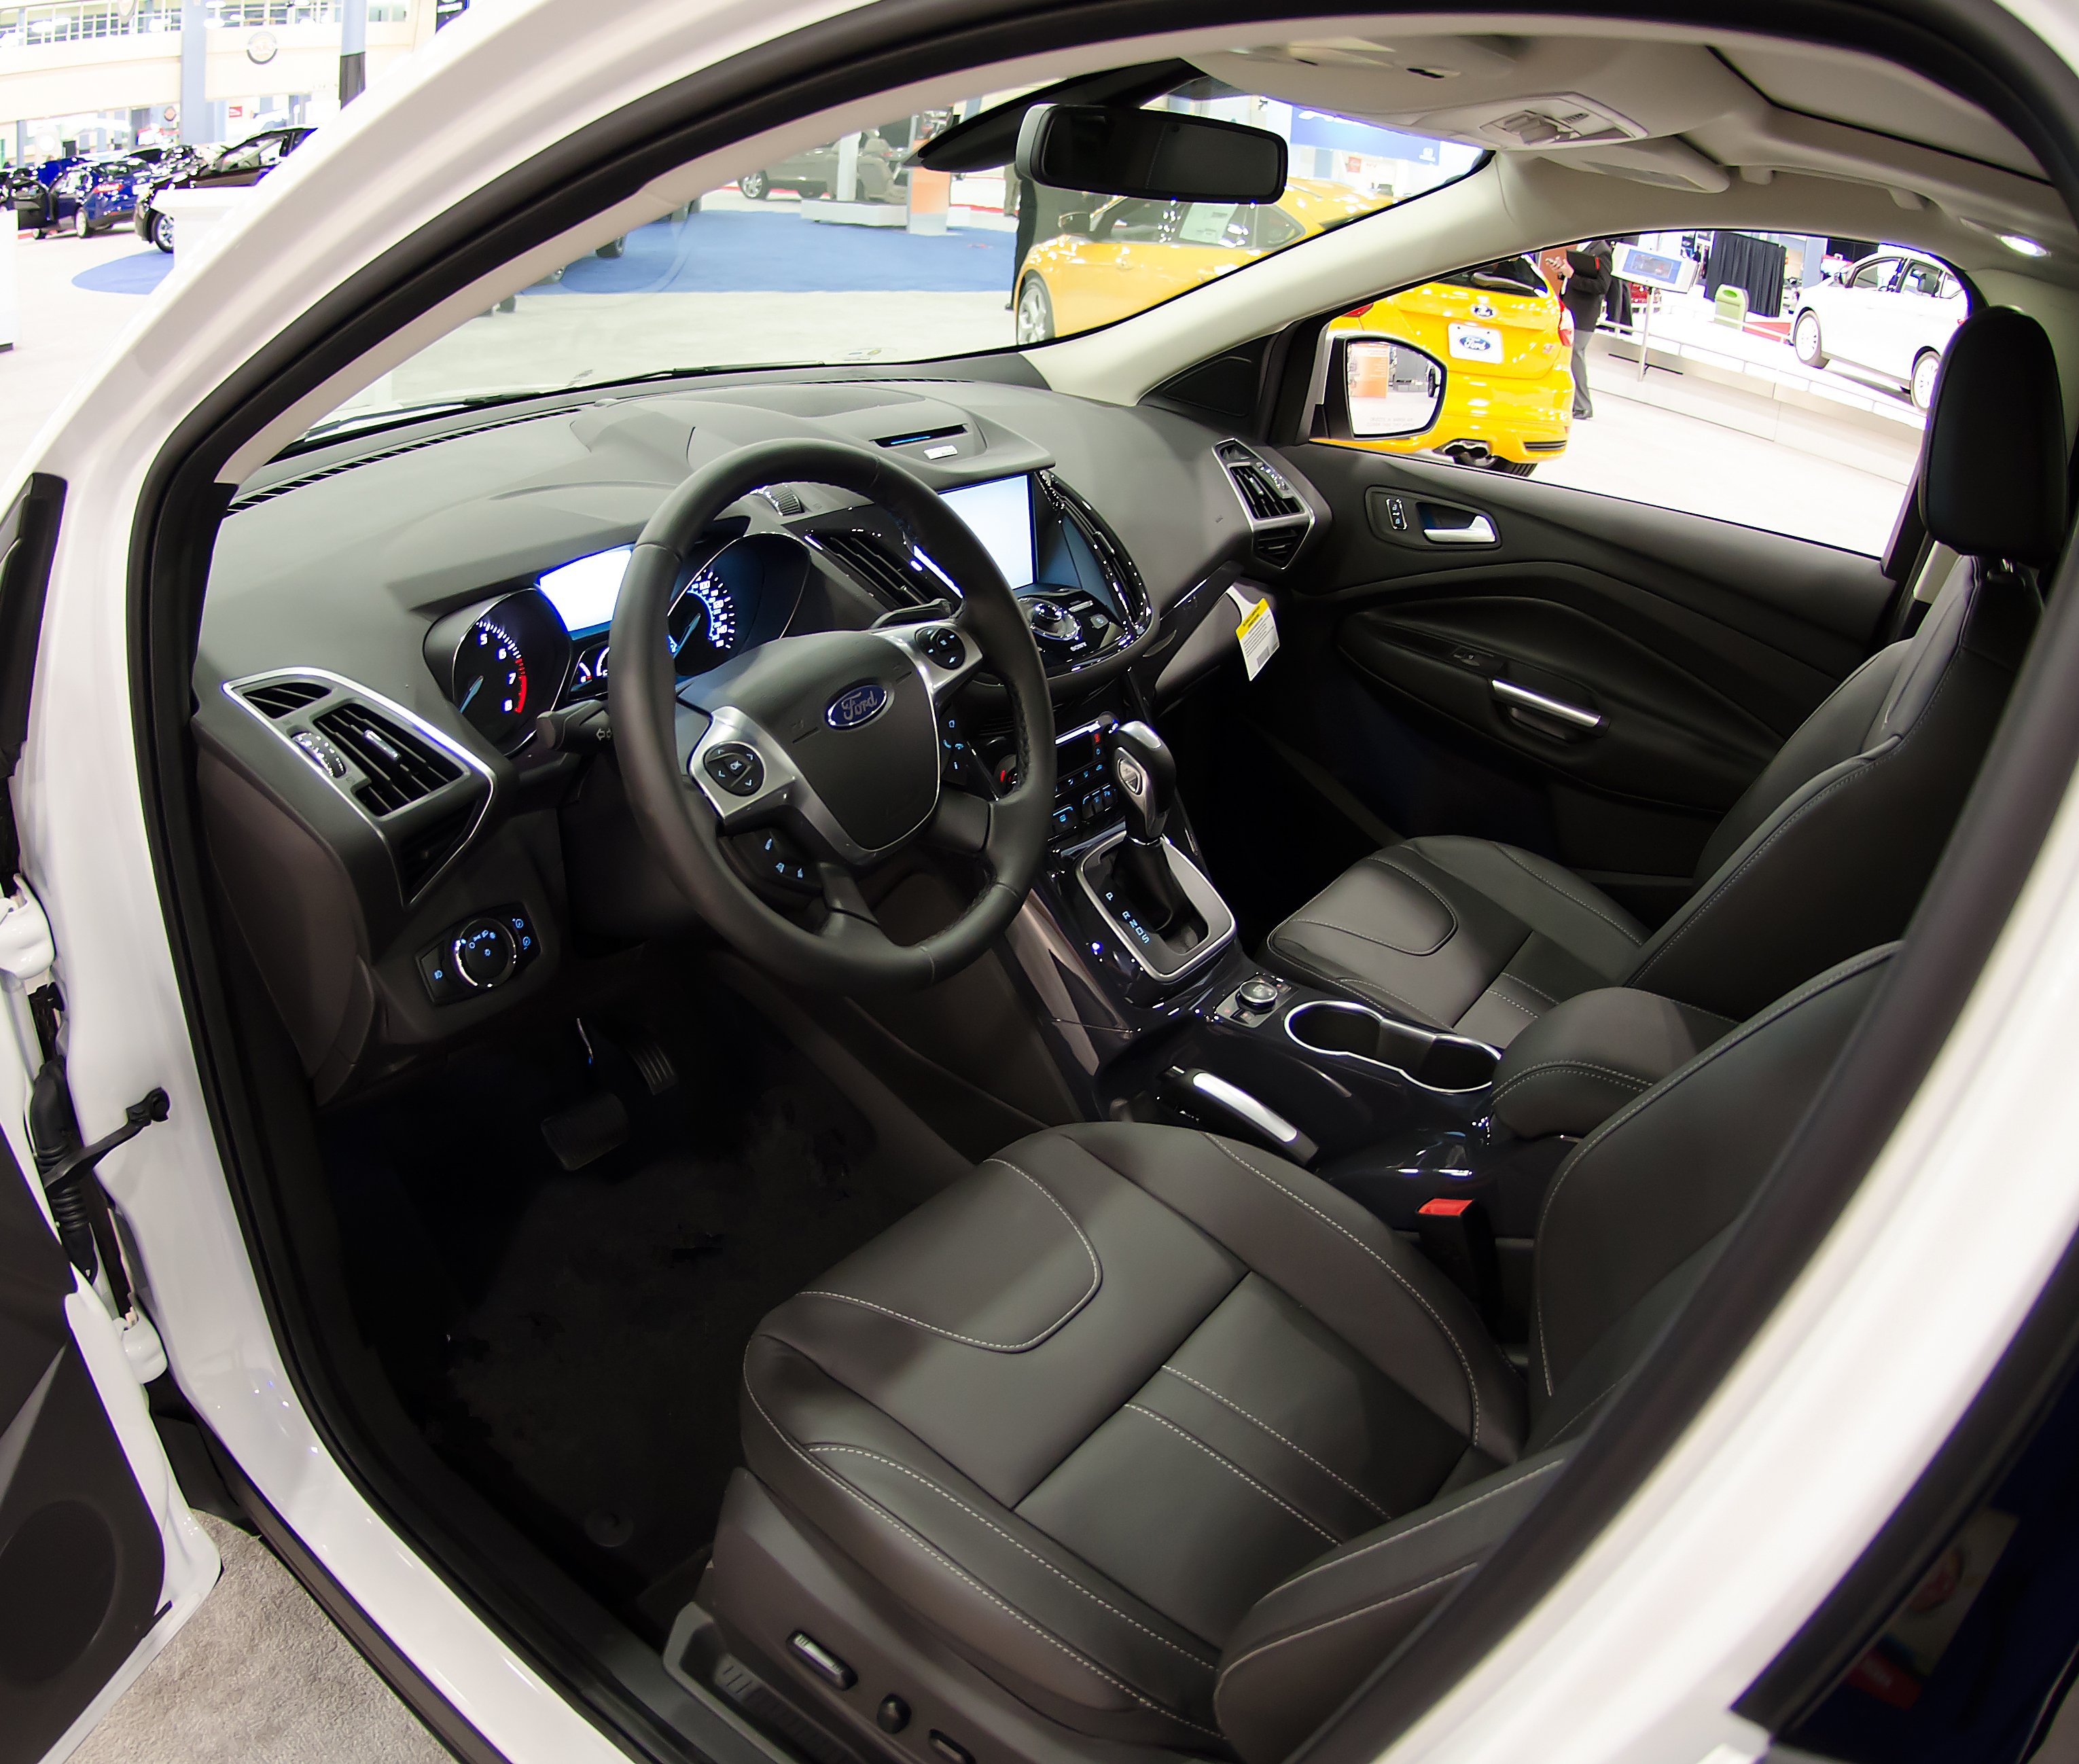 Terrific File 2013 Ford Escape Interior Shot Wikimedia Commons Unemploymentrelief Wooden Chair Designs For Living Room Unemploymentrelieforg